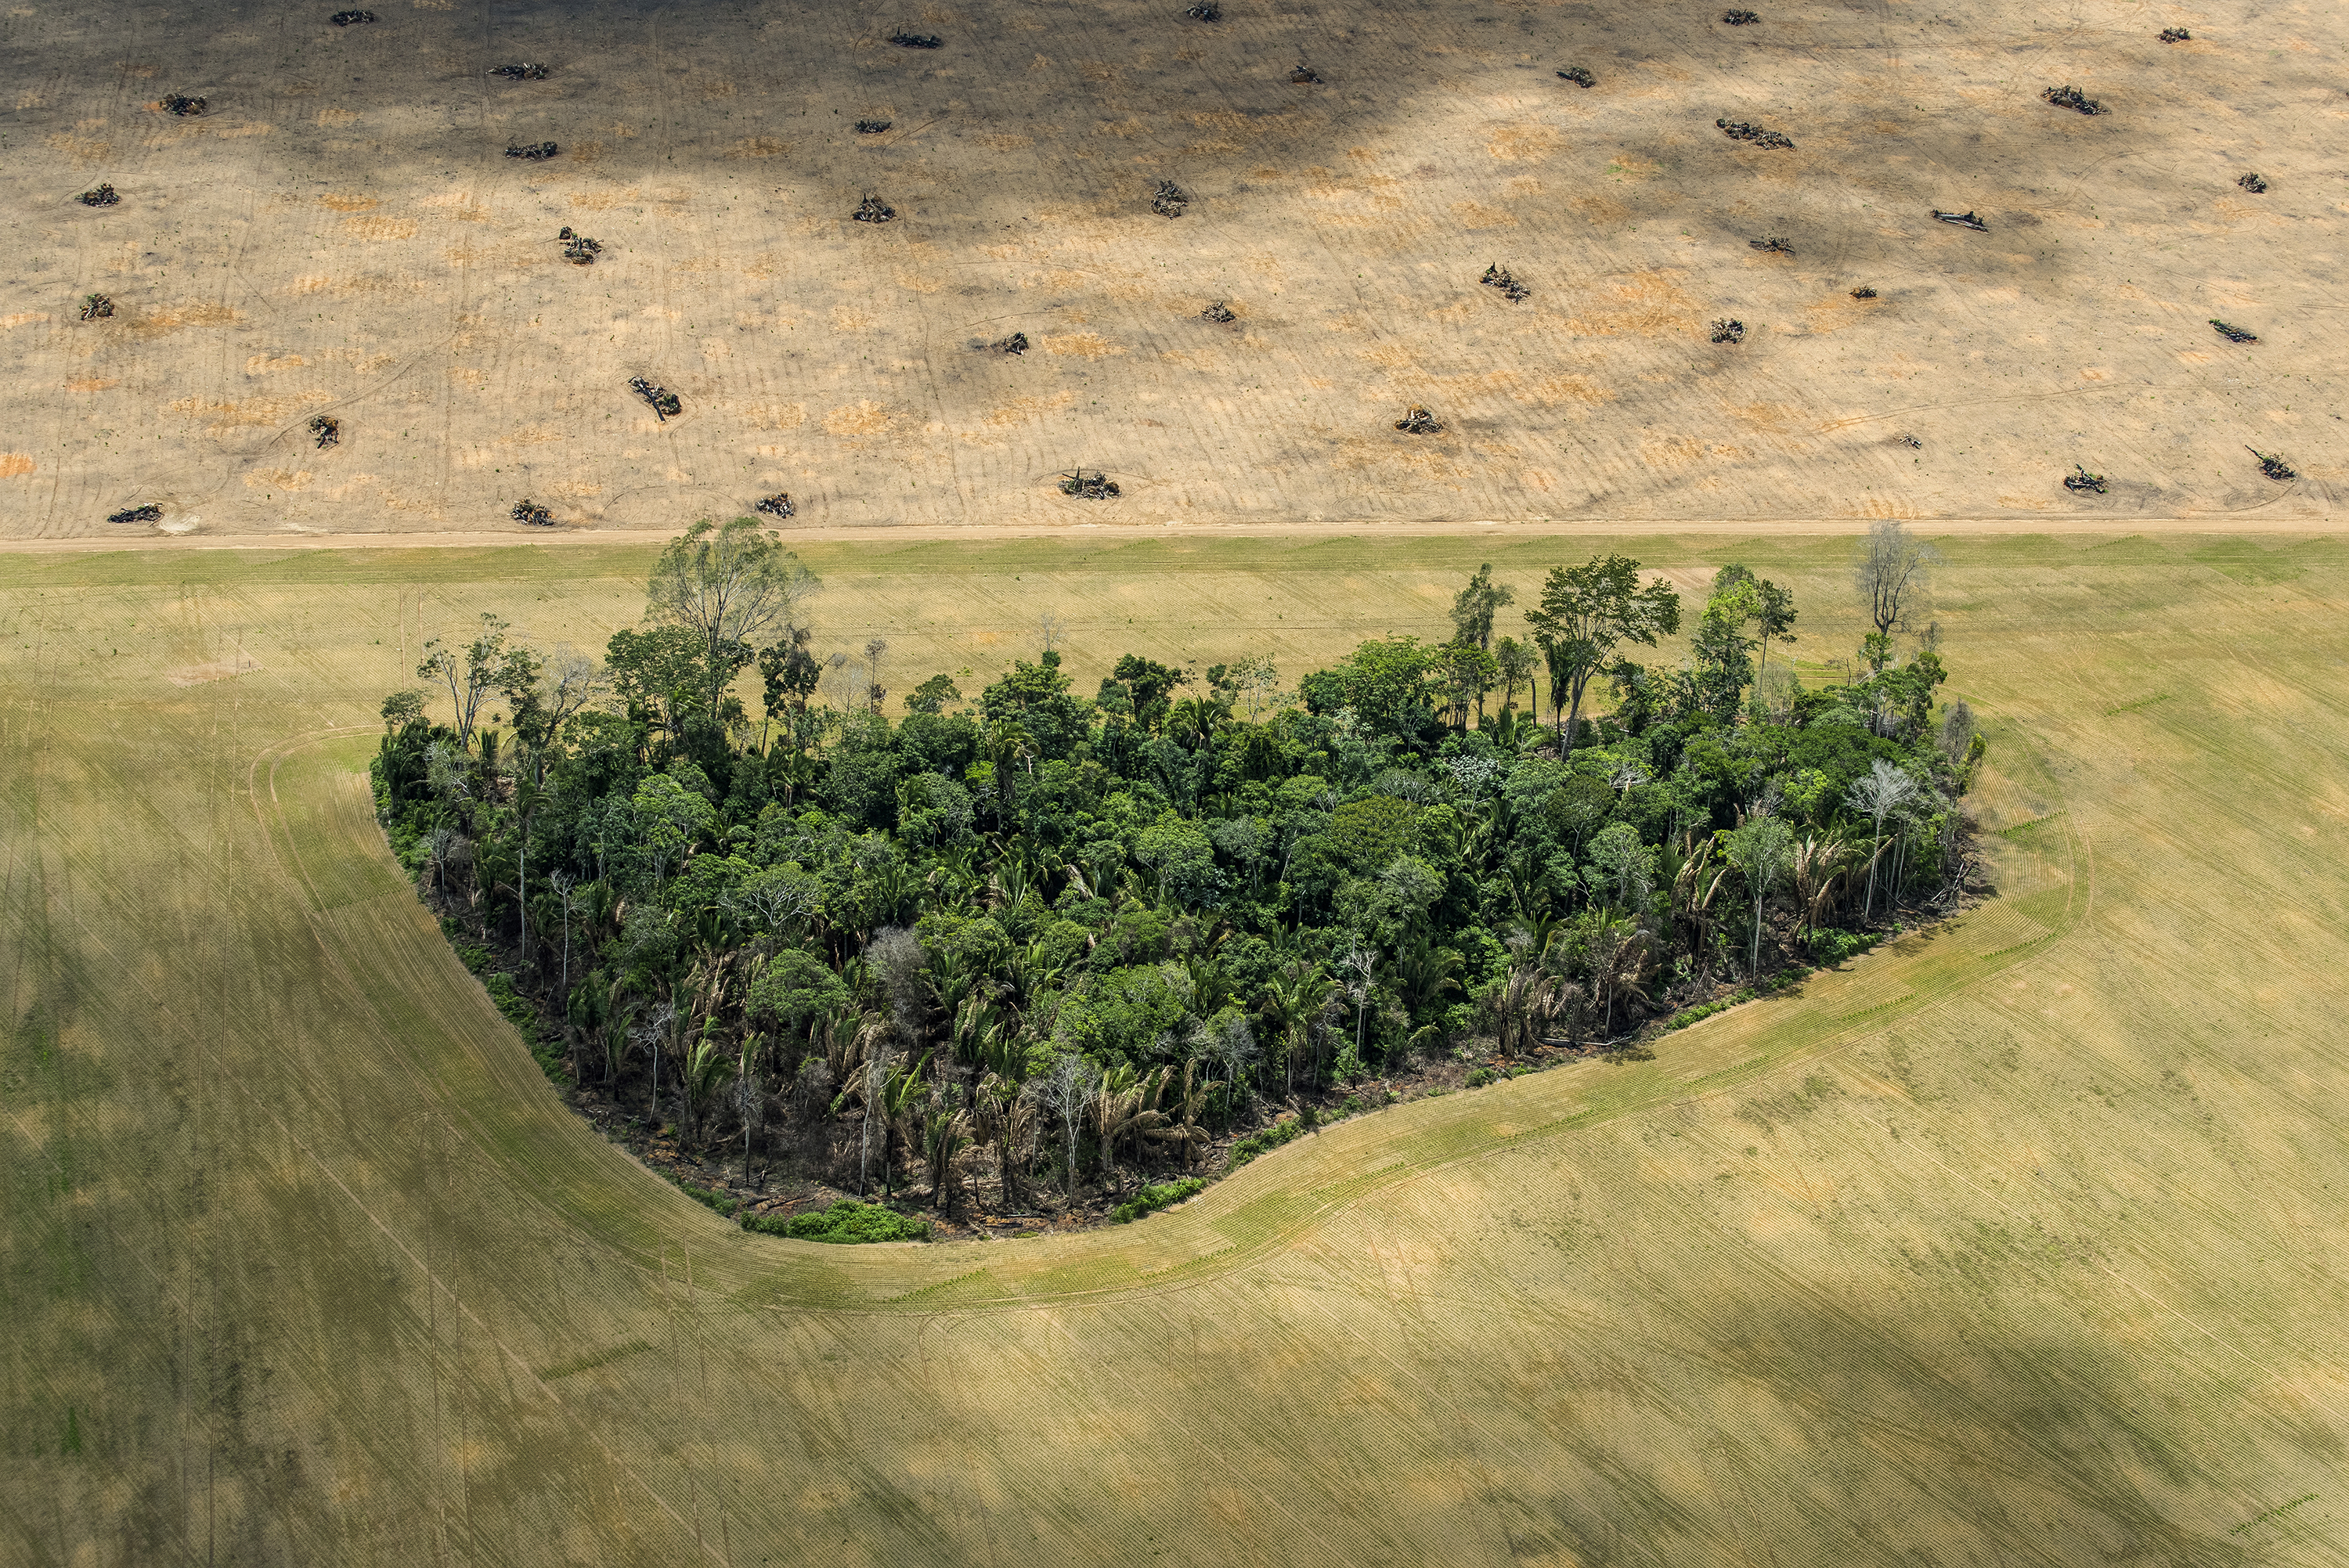 A remnant of rainforest stands in fields cleared for agriculture, near the Tapajós River, Brazilian Amazon.